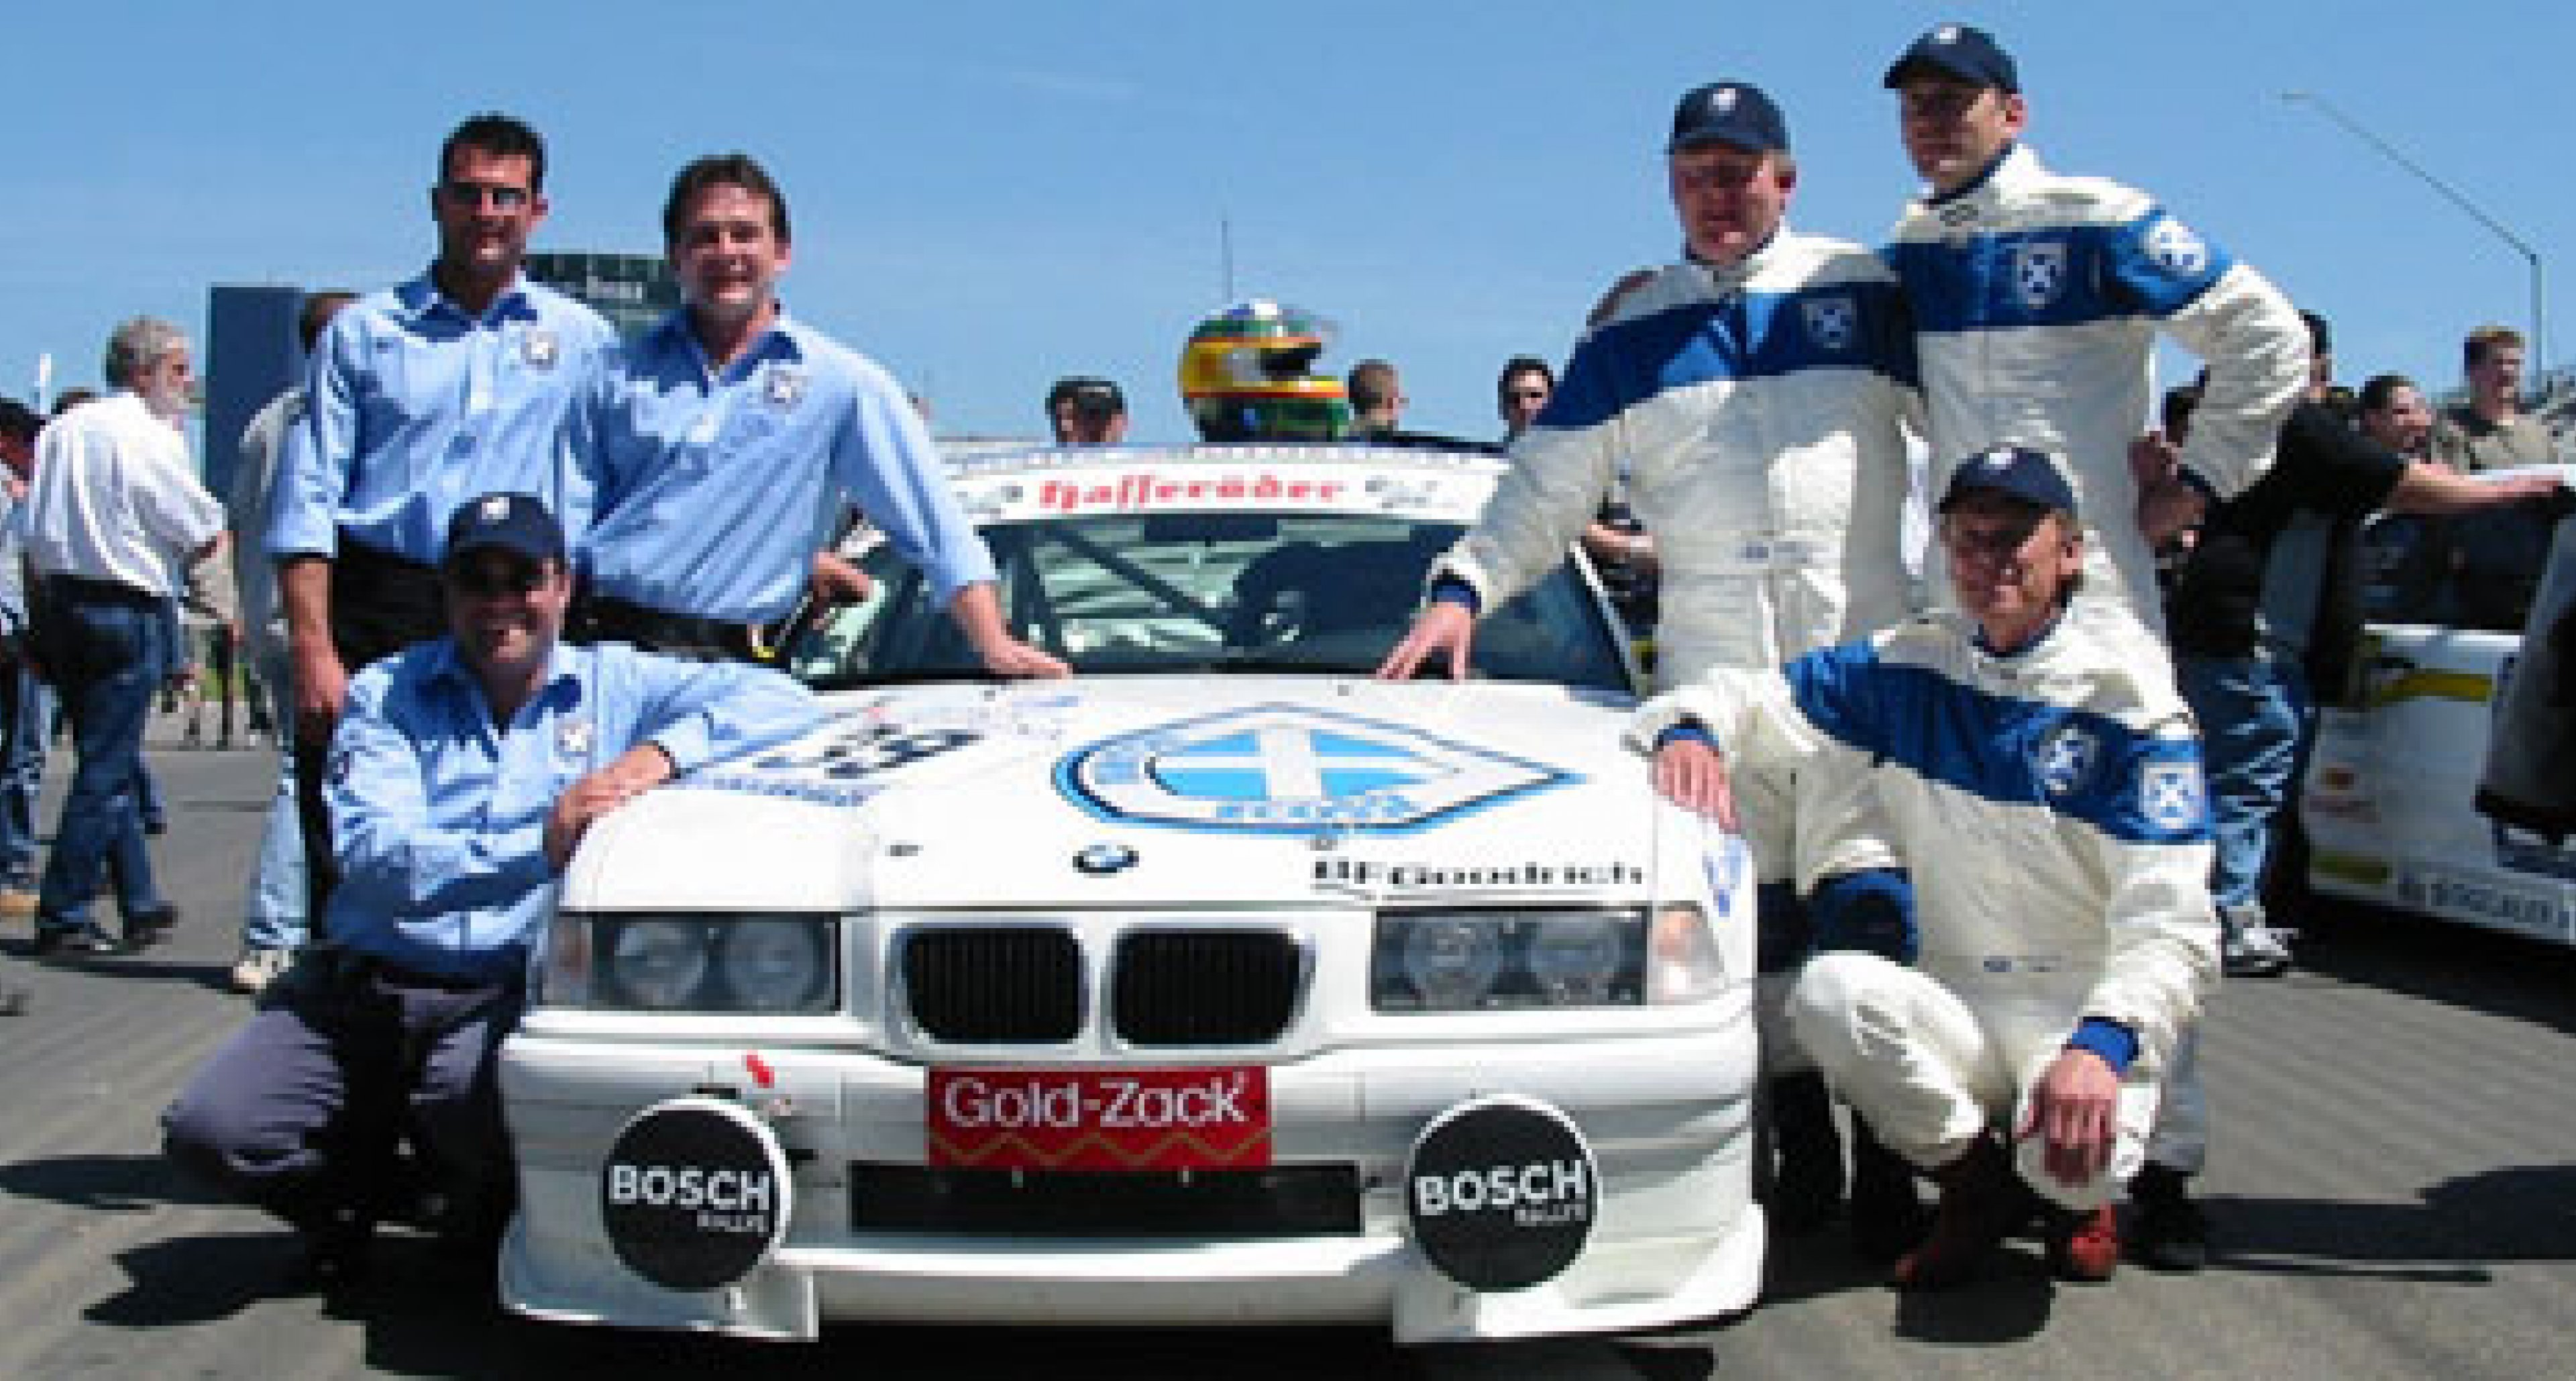 Ecurie Ecosse at the Nurburgring 24 Hours 2002